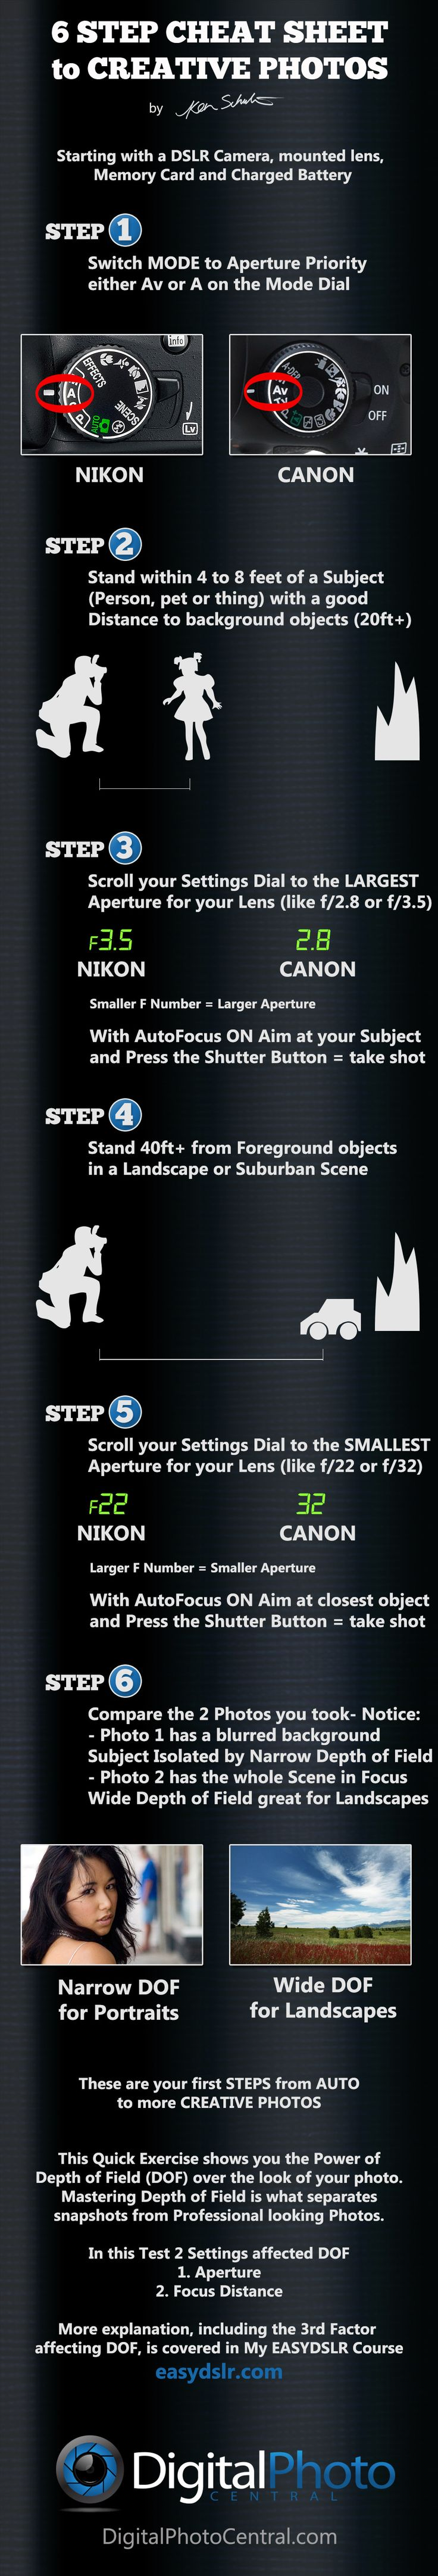 6 Step Cheat Sheet for More Creative Photos